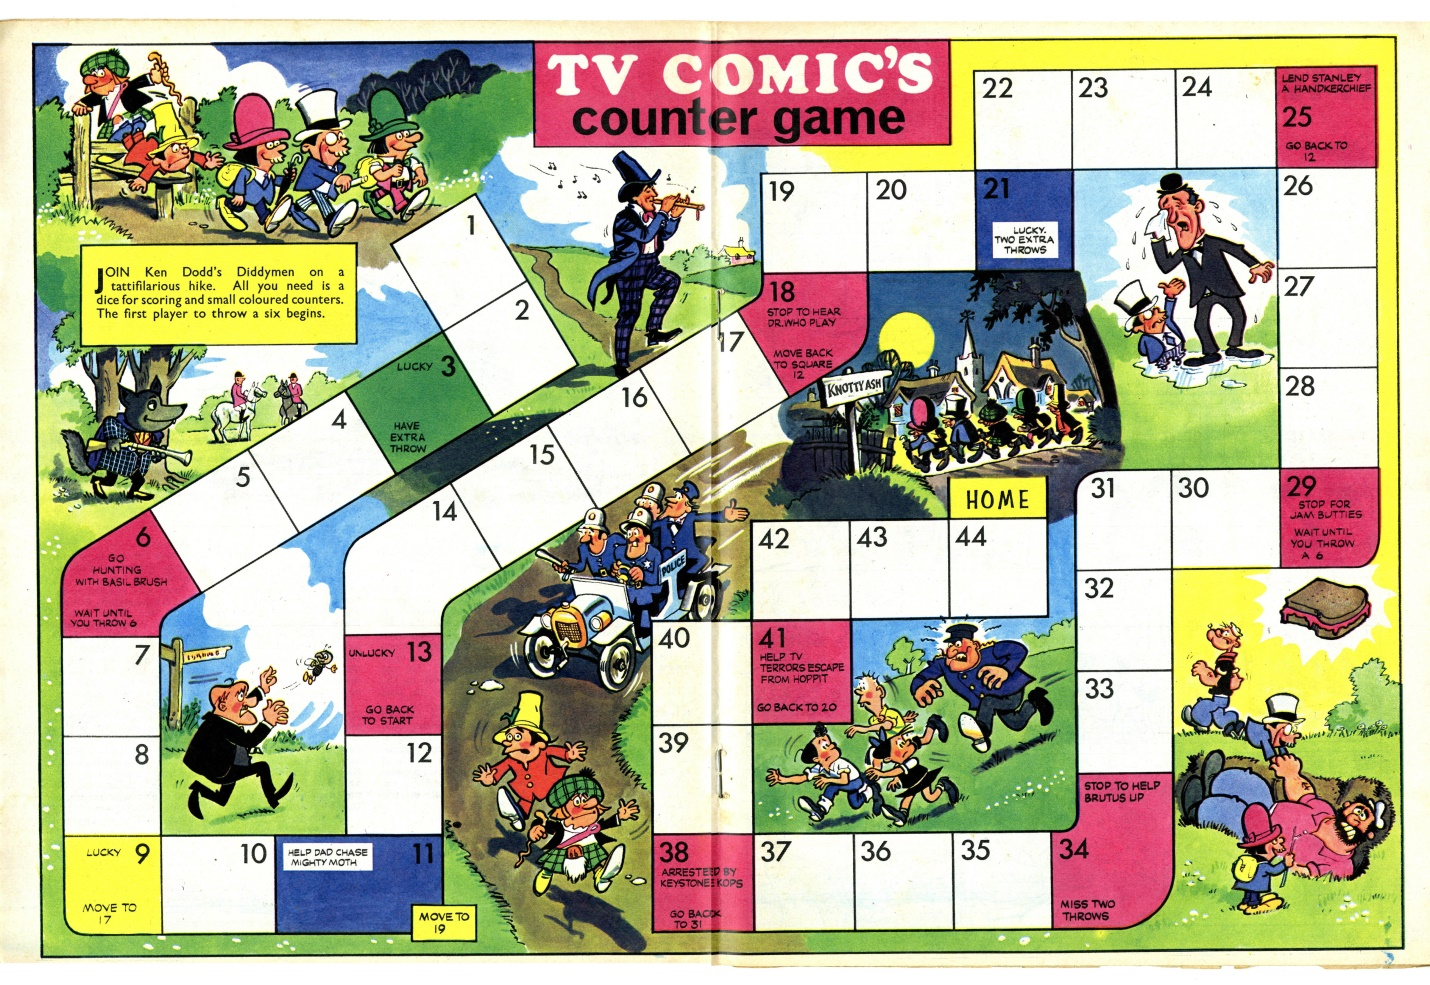 Counter Game in the TV Comic Holiday Special 1968